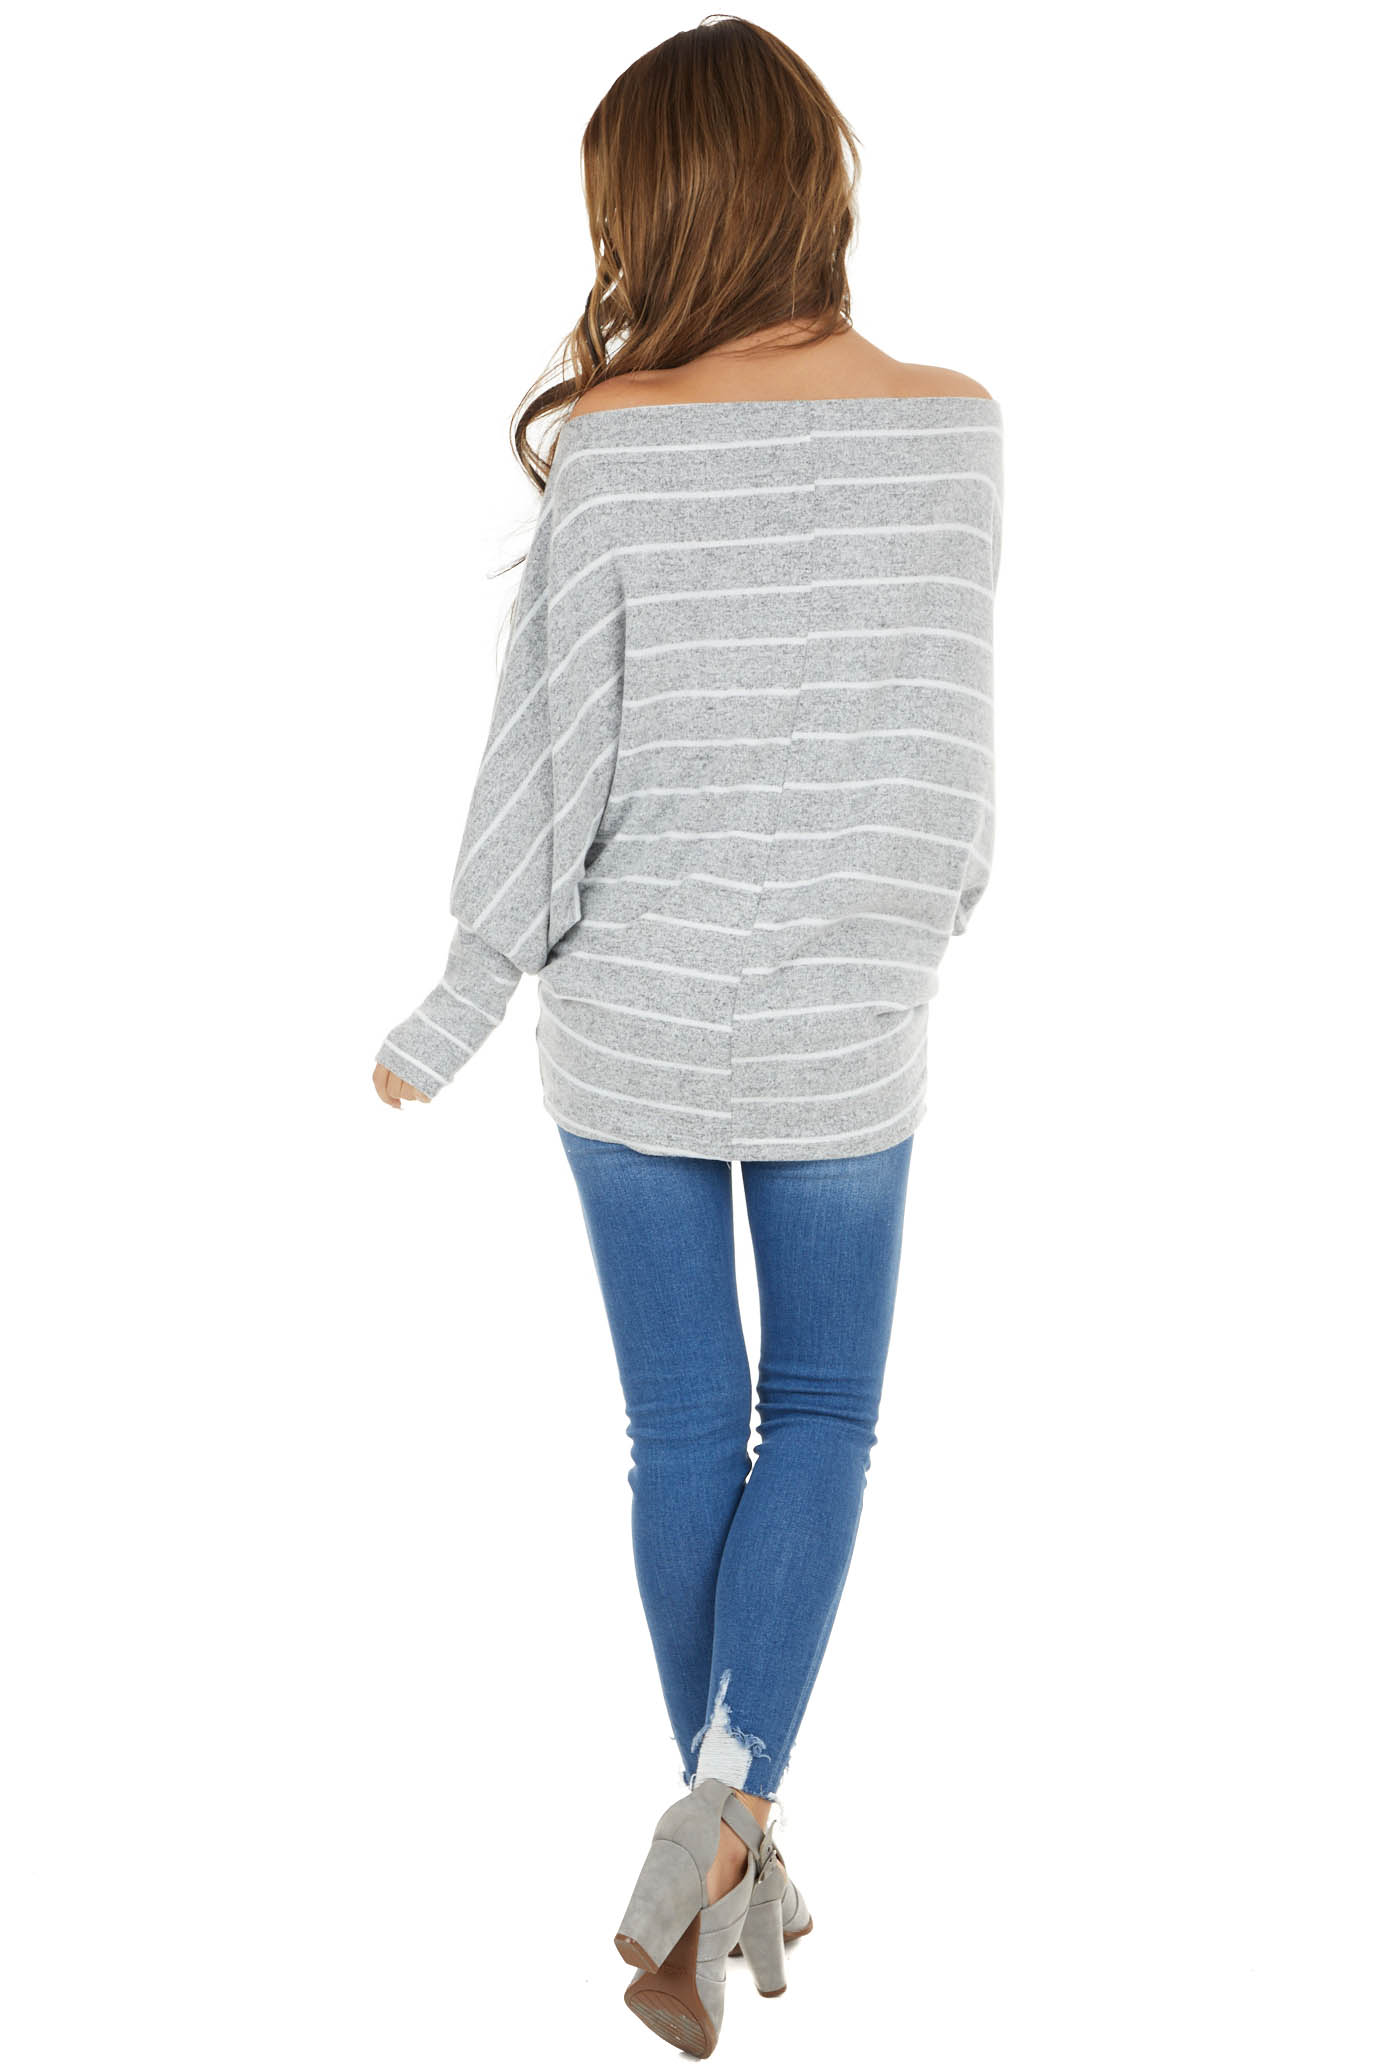 Heather Grey Striped Soft Knit Top with Long Dolman Sleeves